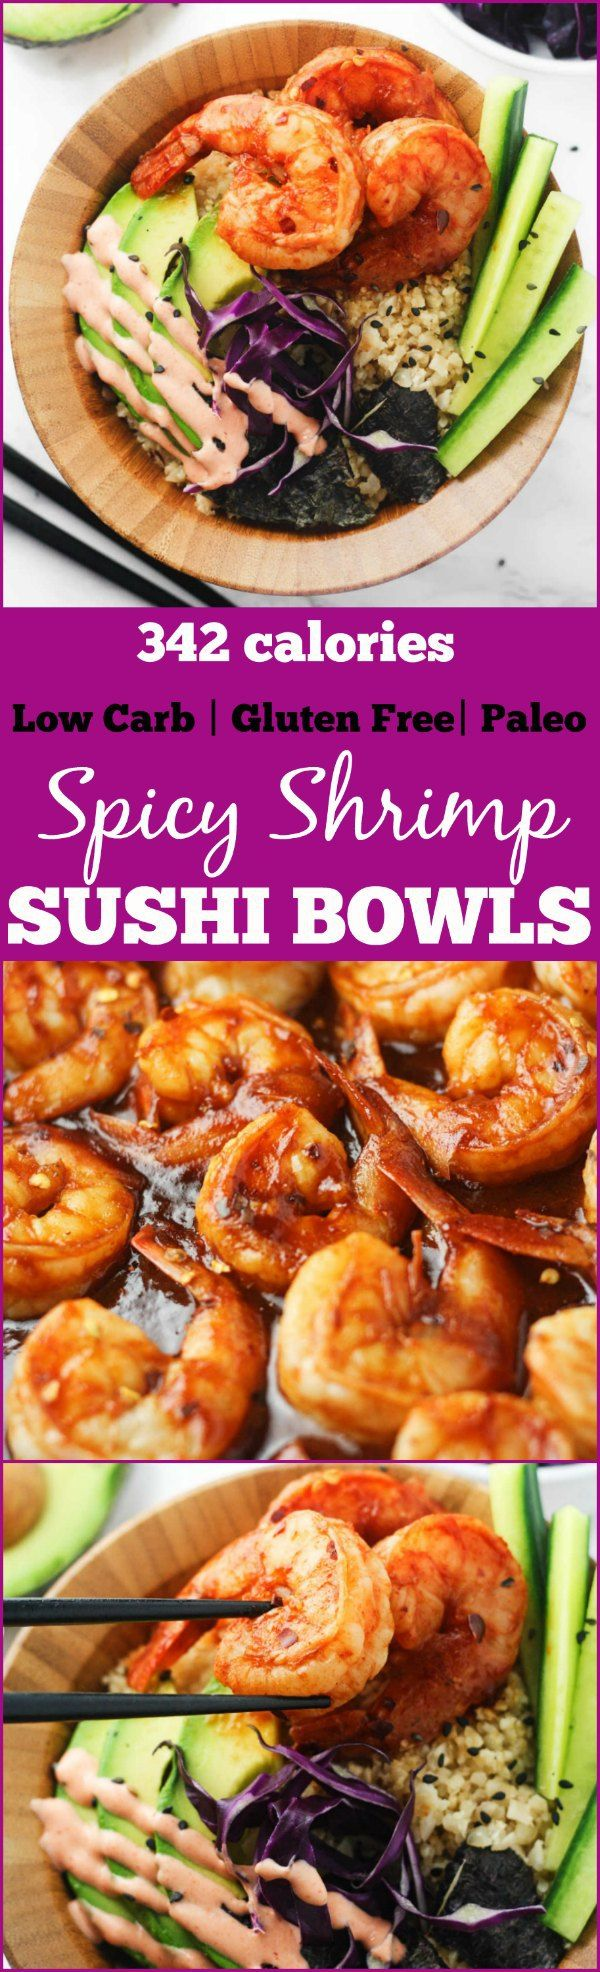 Low Carb Spicy Shrimp Sushi Bowls - delicious, gluten free and paleo sushi bowls made with cauliflower rice and packed with flavor! Totally guilt free . www.itscheatdayeveryday.com